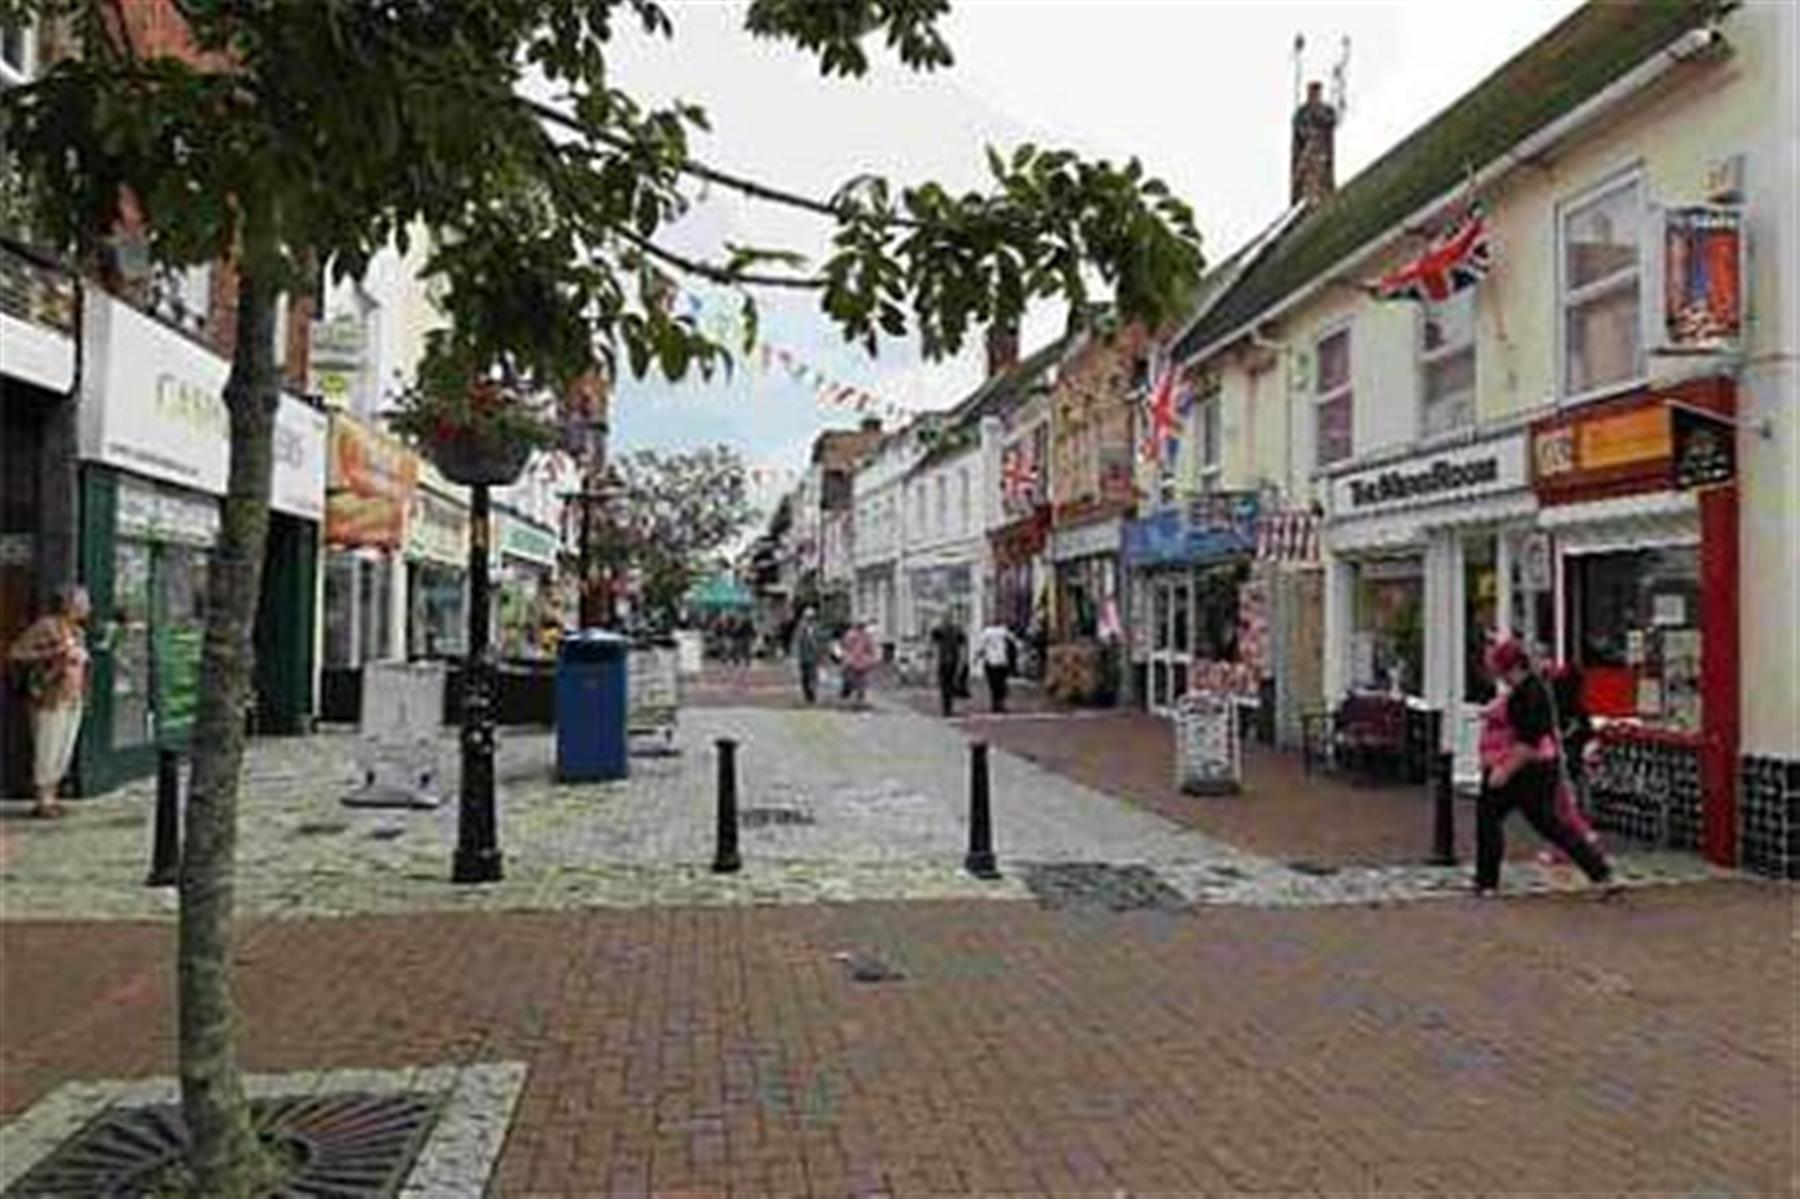 'Poole high street is tatty and unloved - and I wouldn't recommend new shops open'